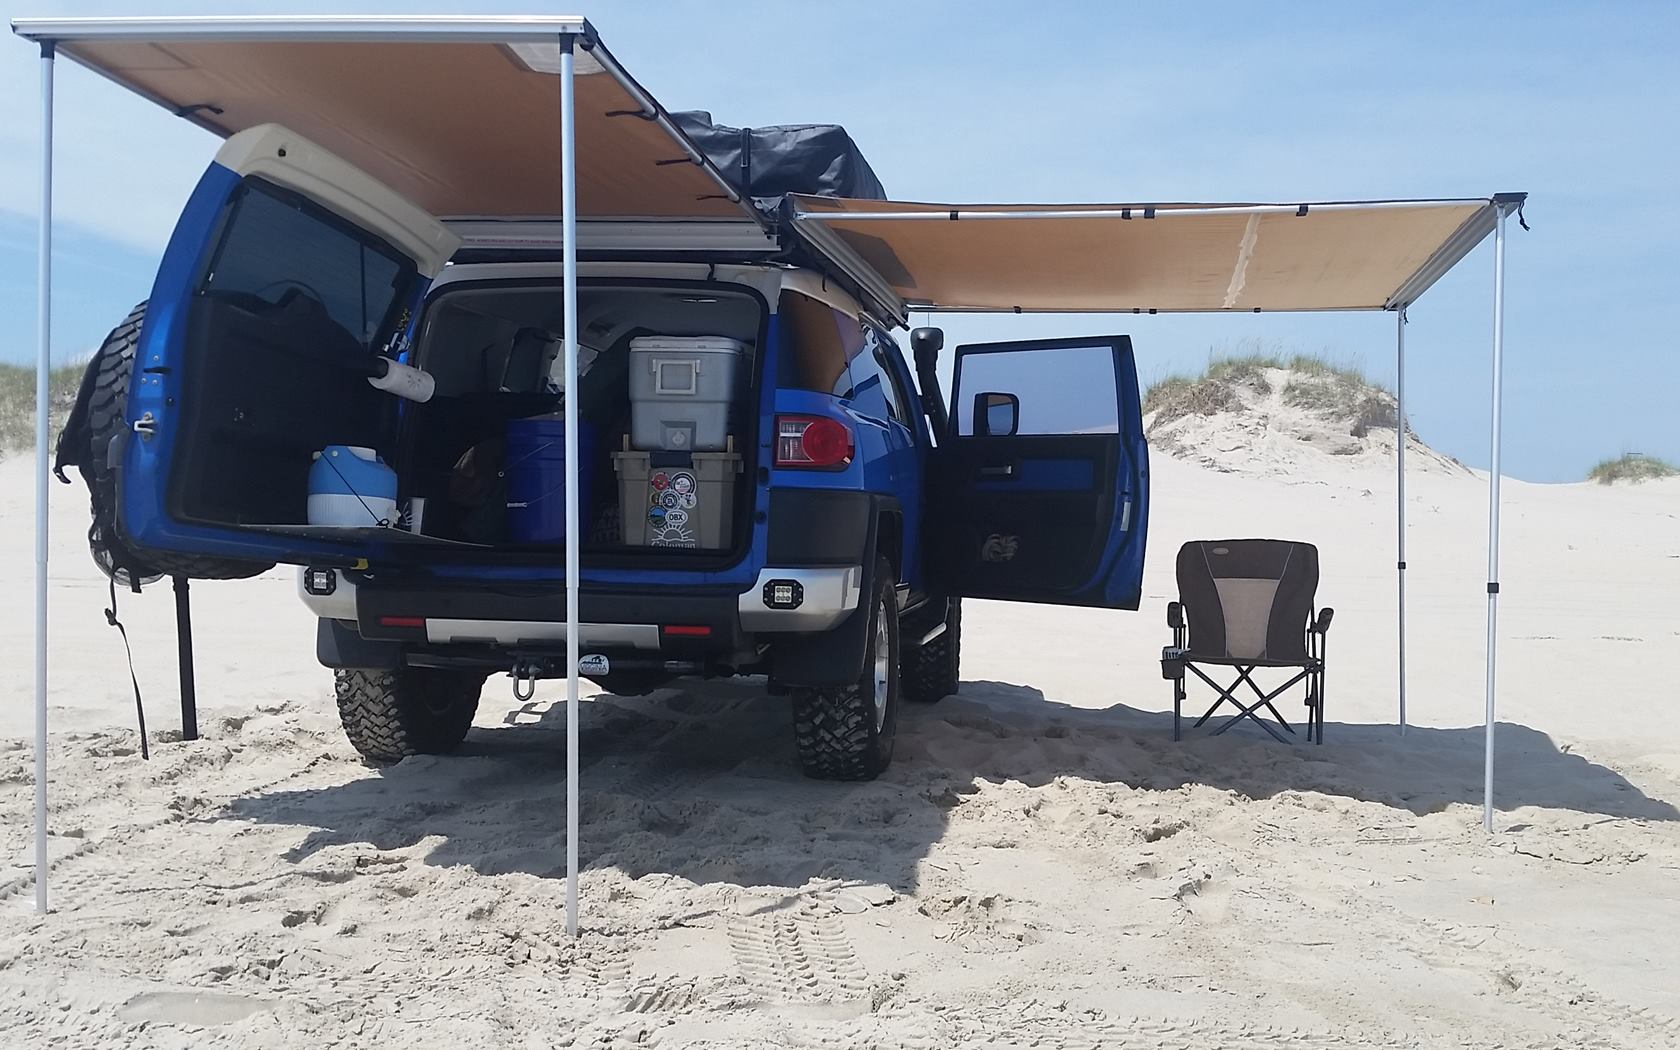 Show me your awnings - Page 14 - Toyota FJ Cruiser Forum